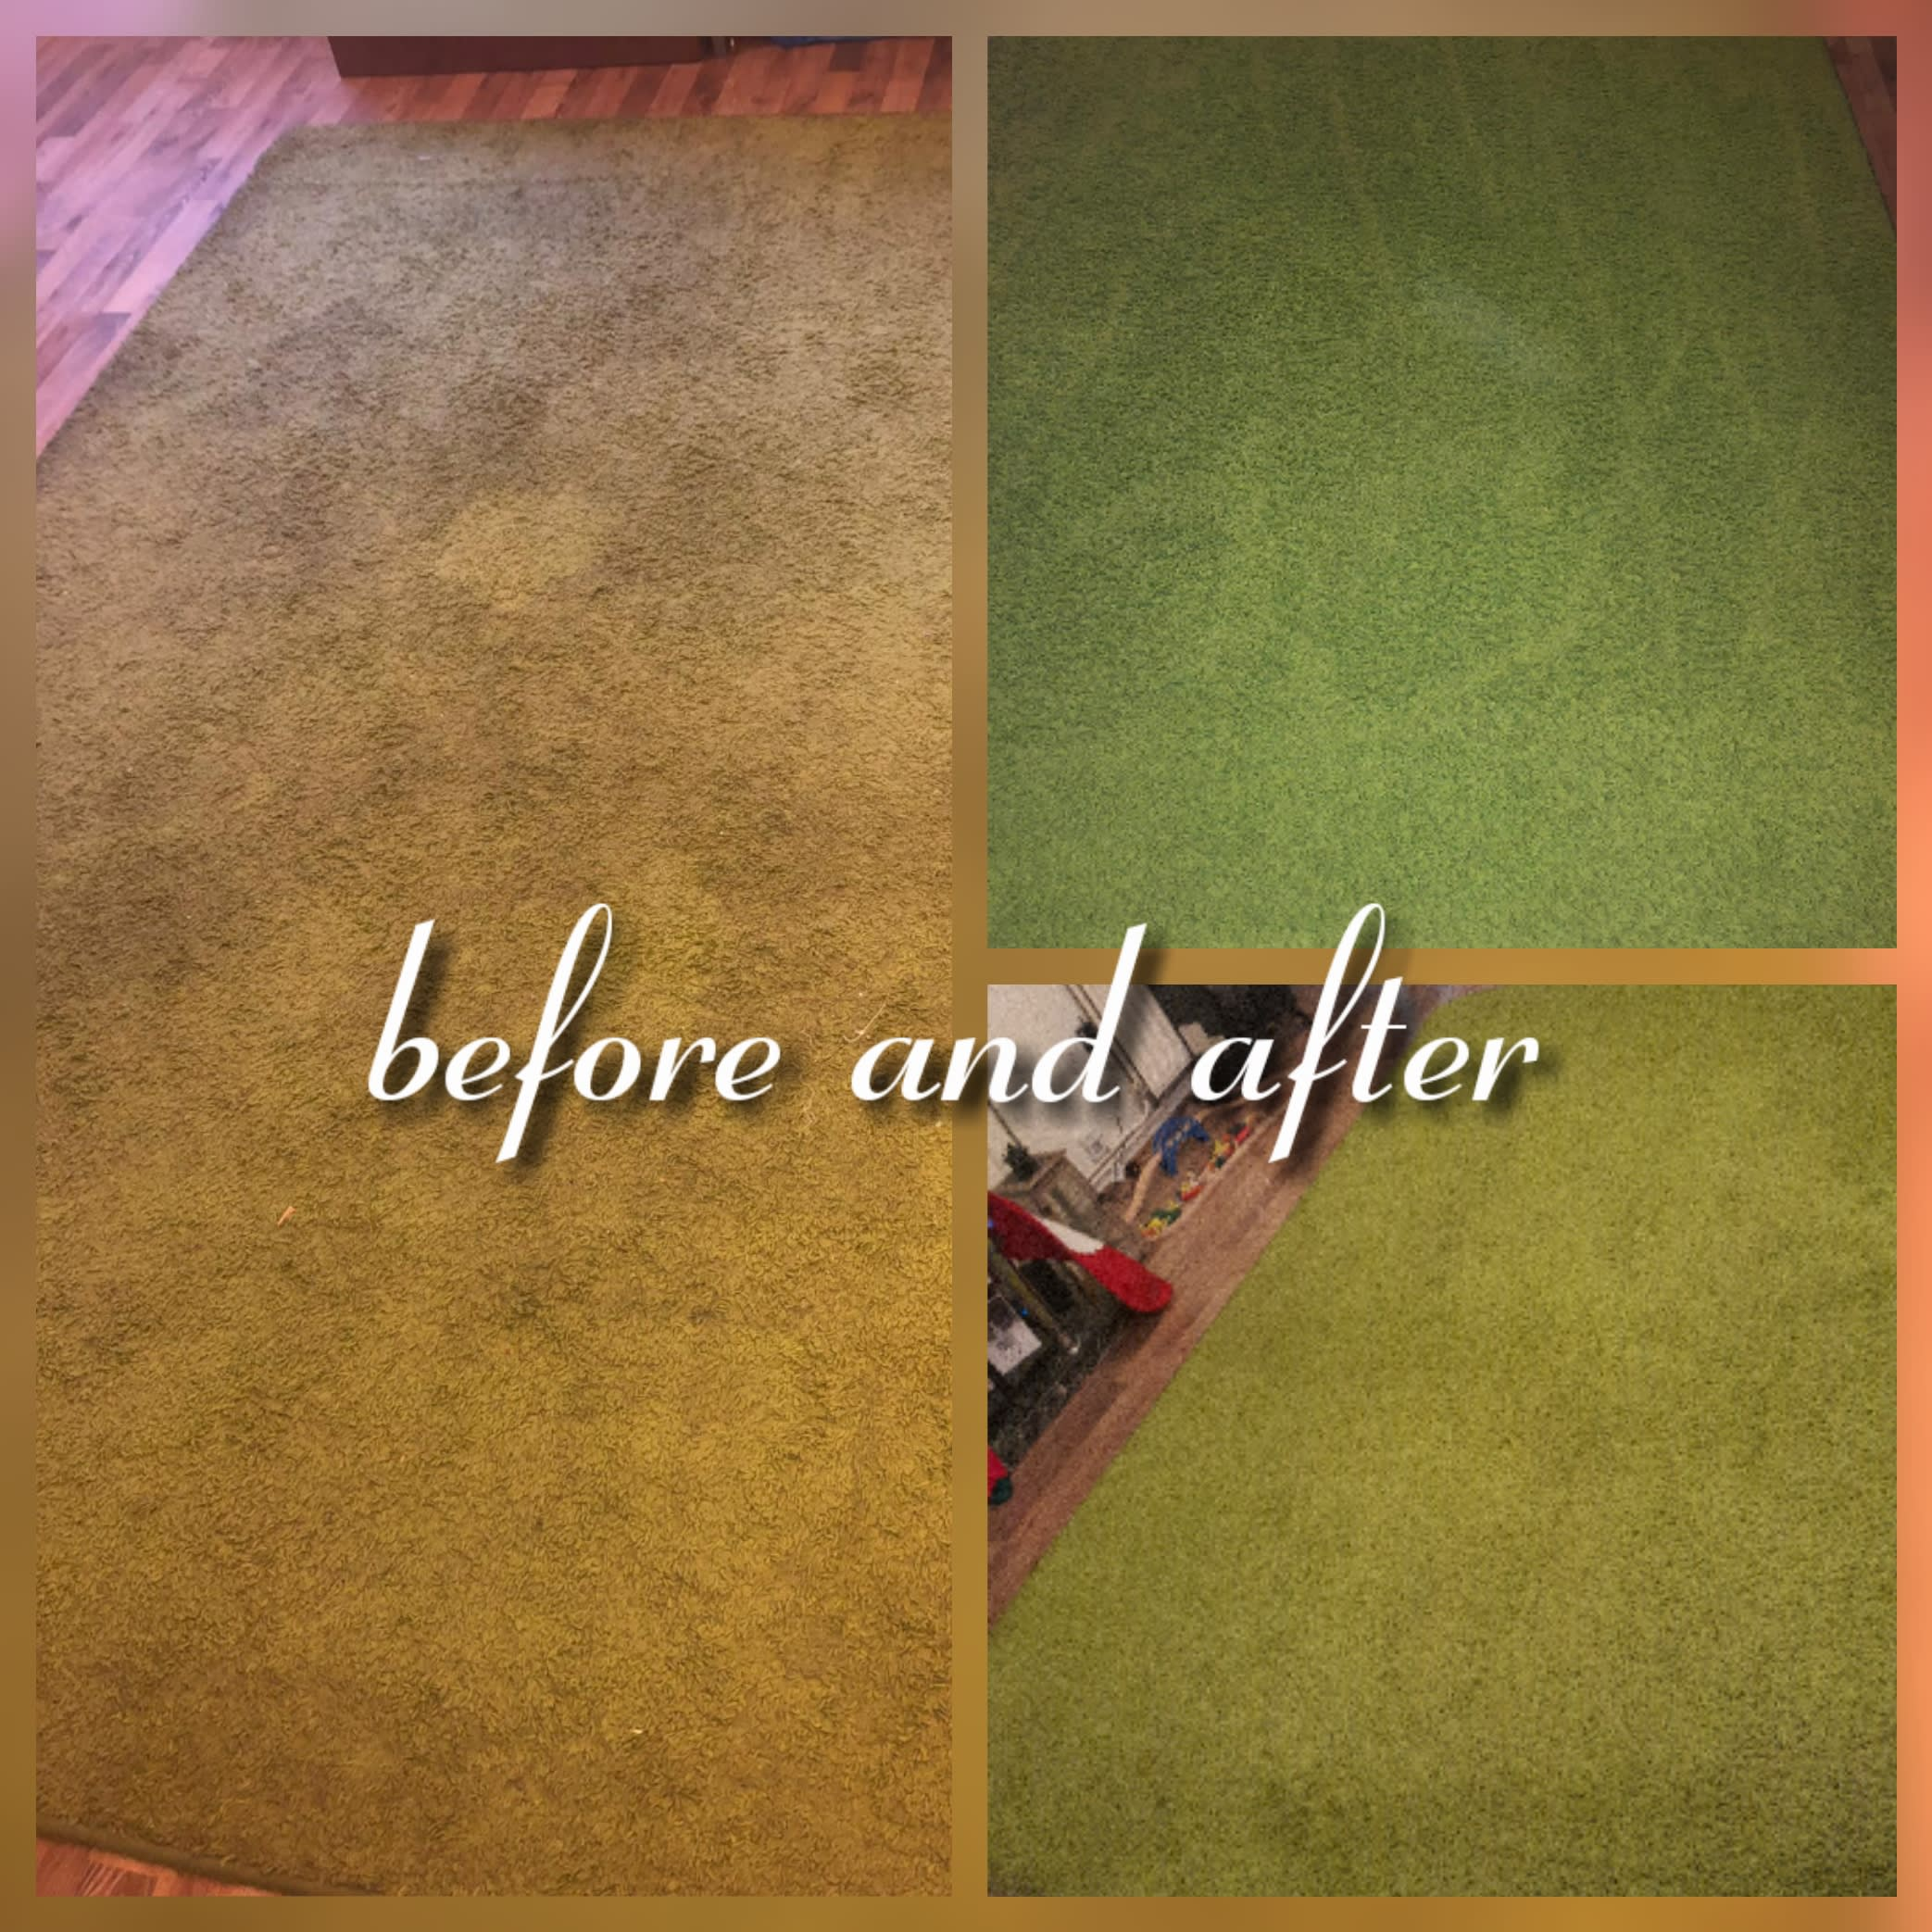 Bebo Carpet & Domestic Cleaning